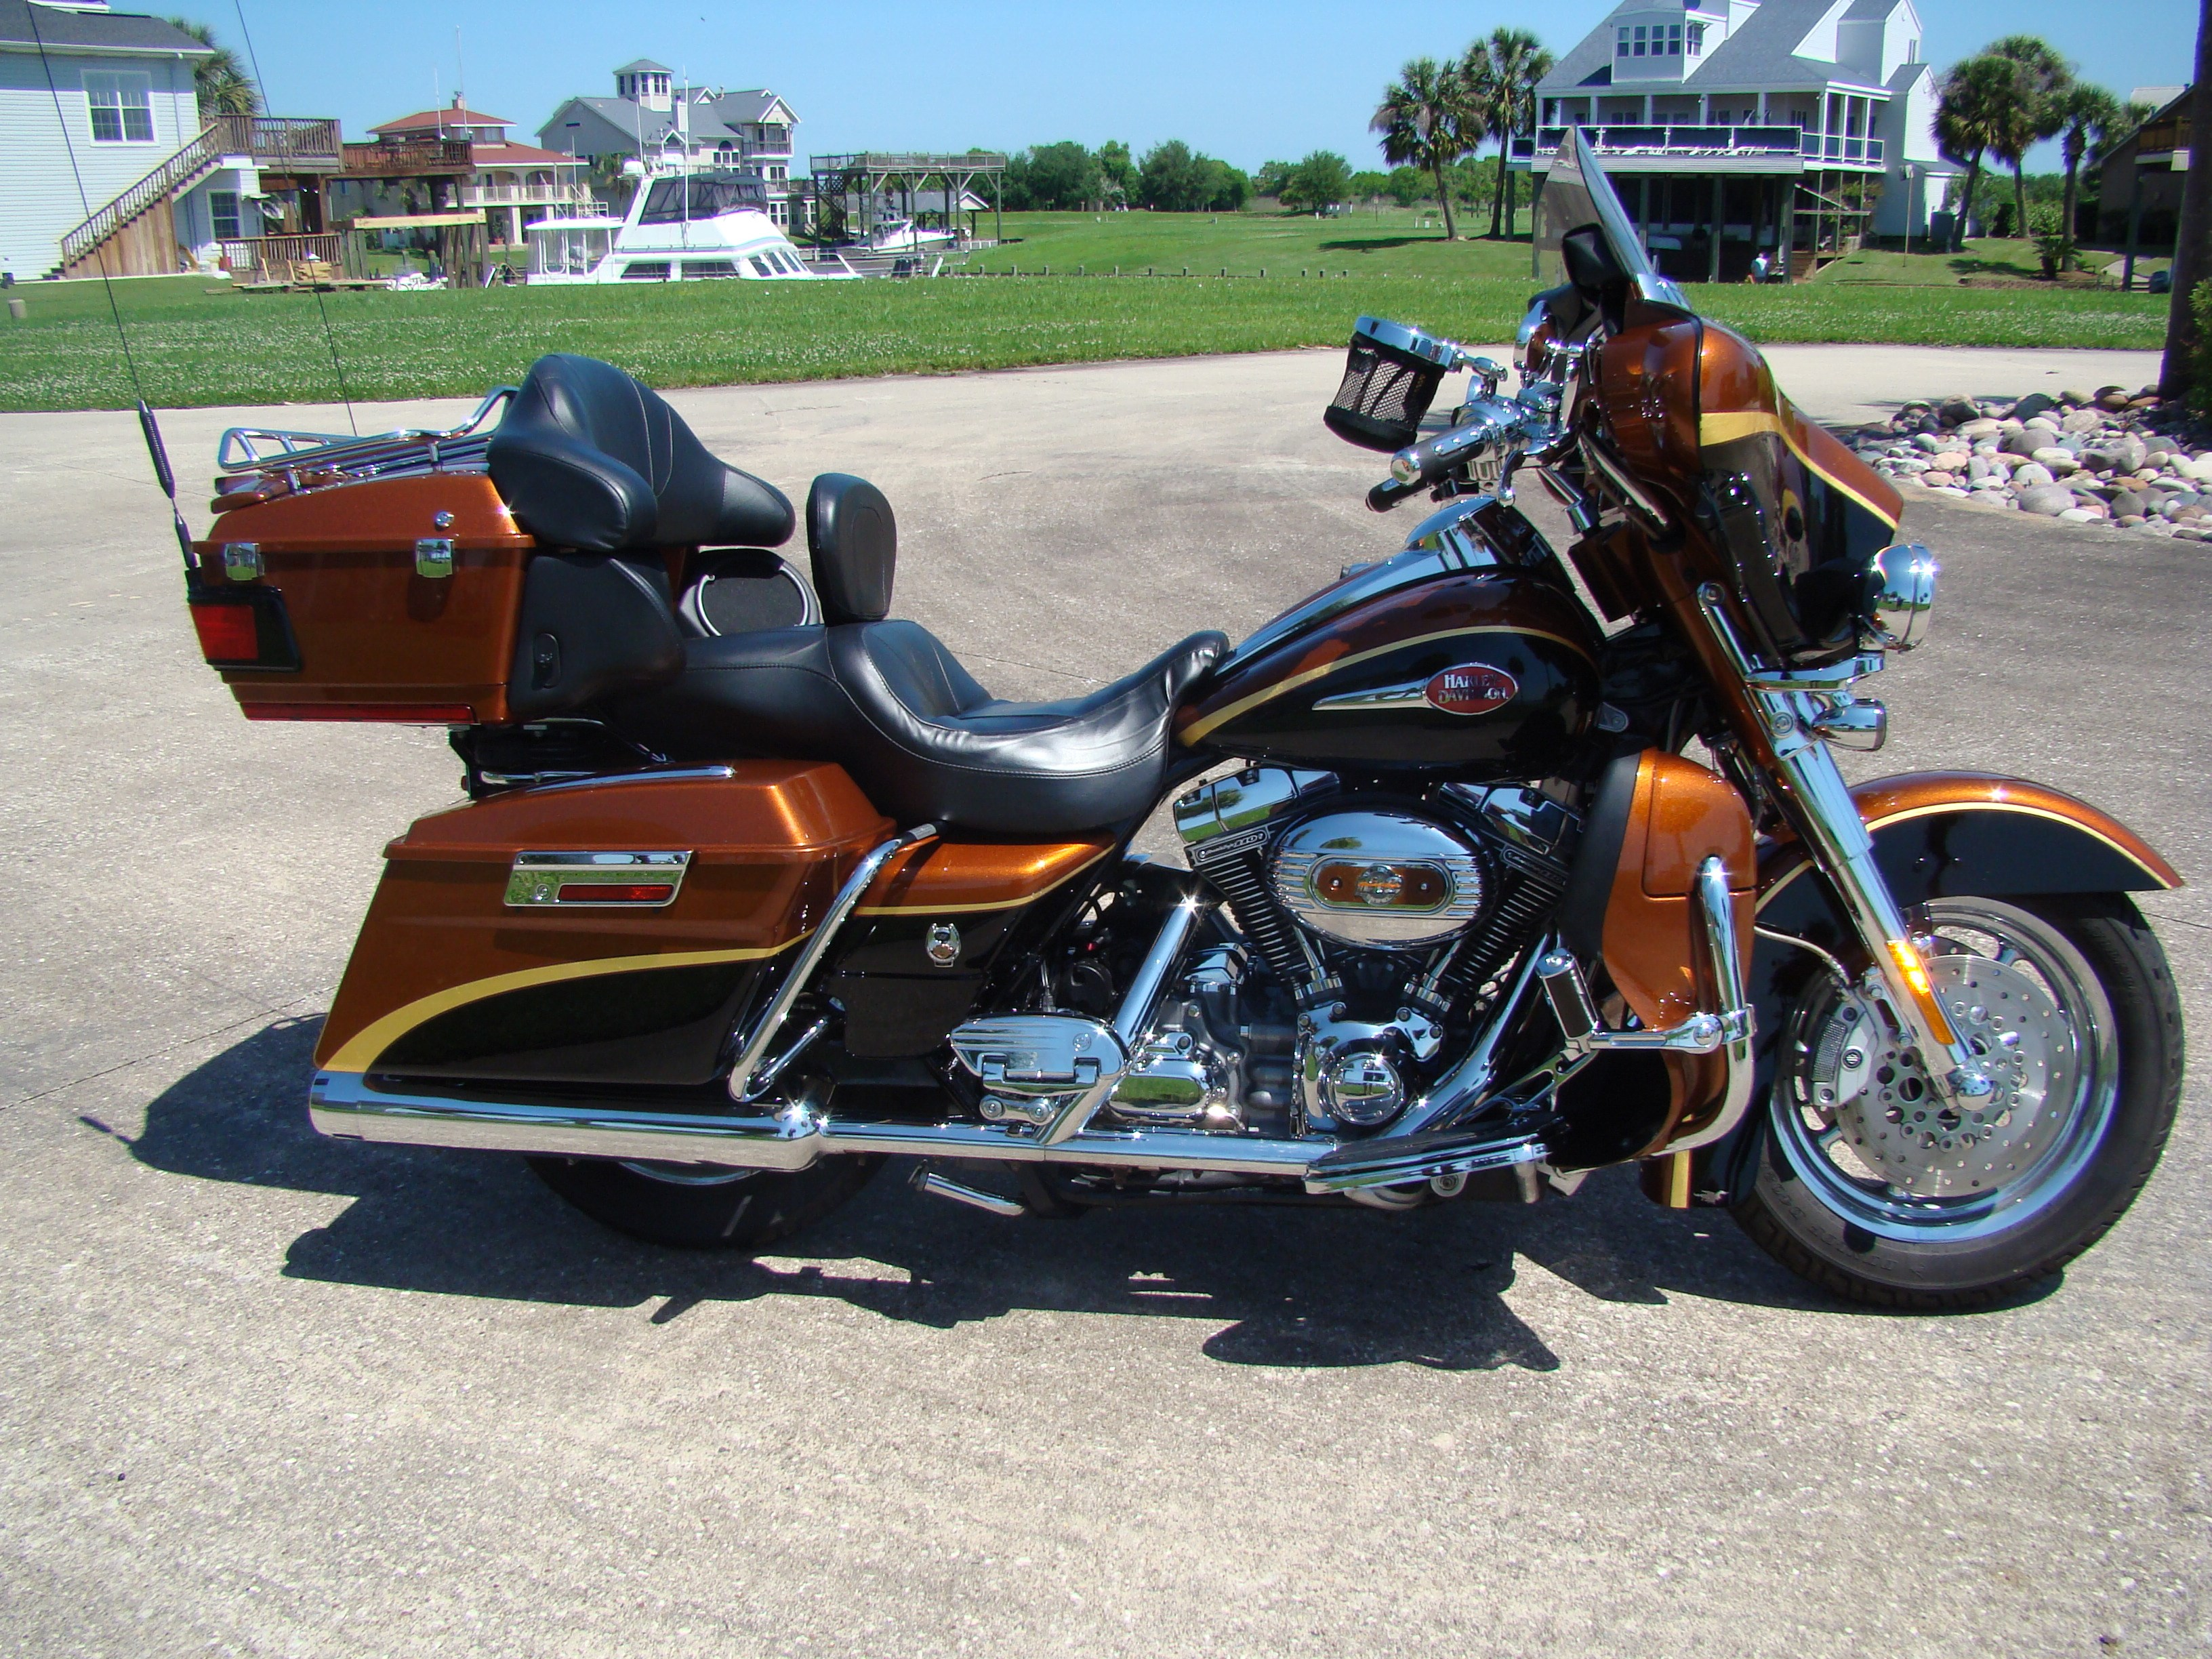 New Harley Davidson Softail Motorcycles For Sale Texas >> All New & Used Harley-Davidson® Screamin Eagle Electra Glide® For Sale (86 Bikes, Page 1 ...